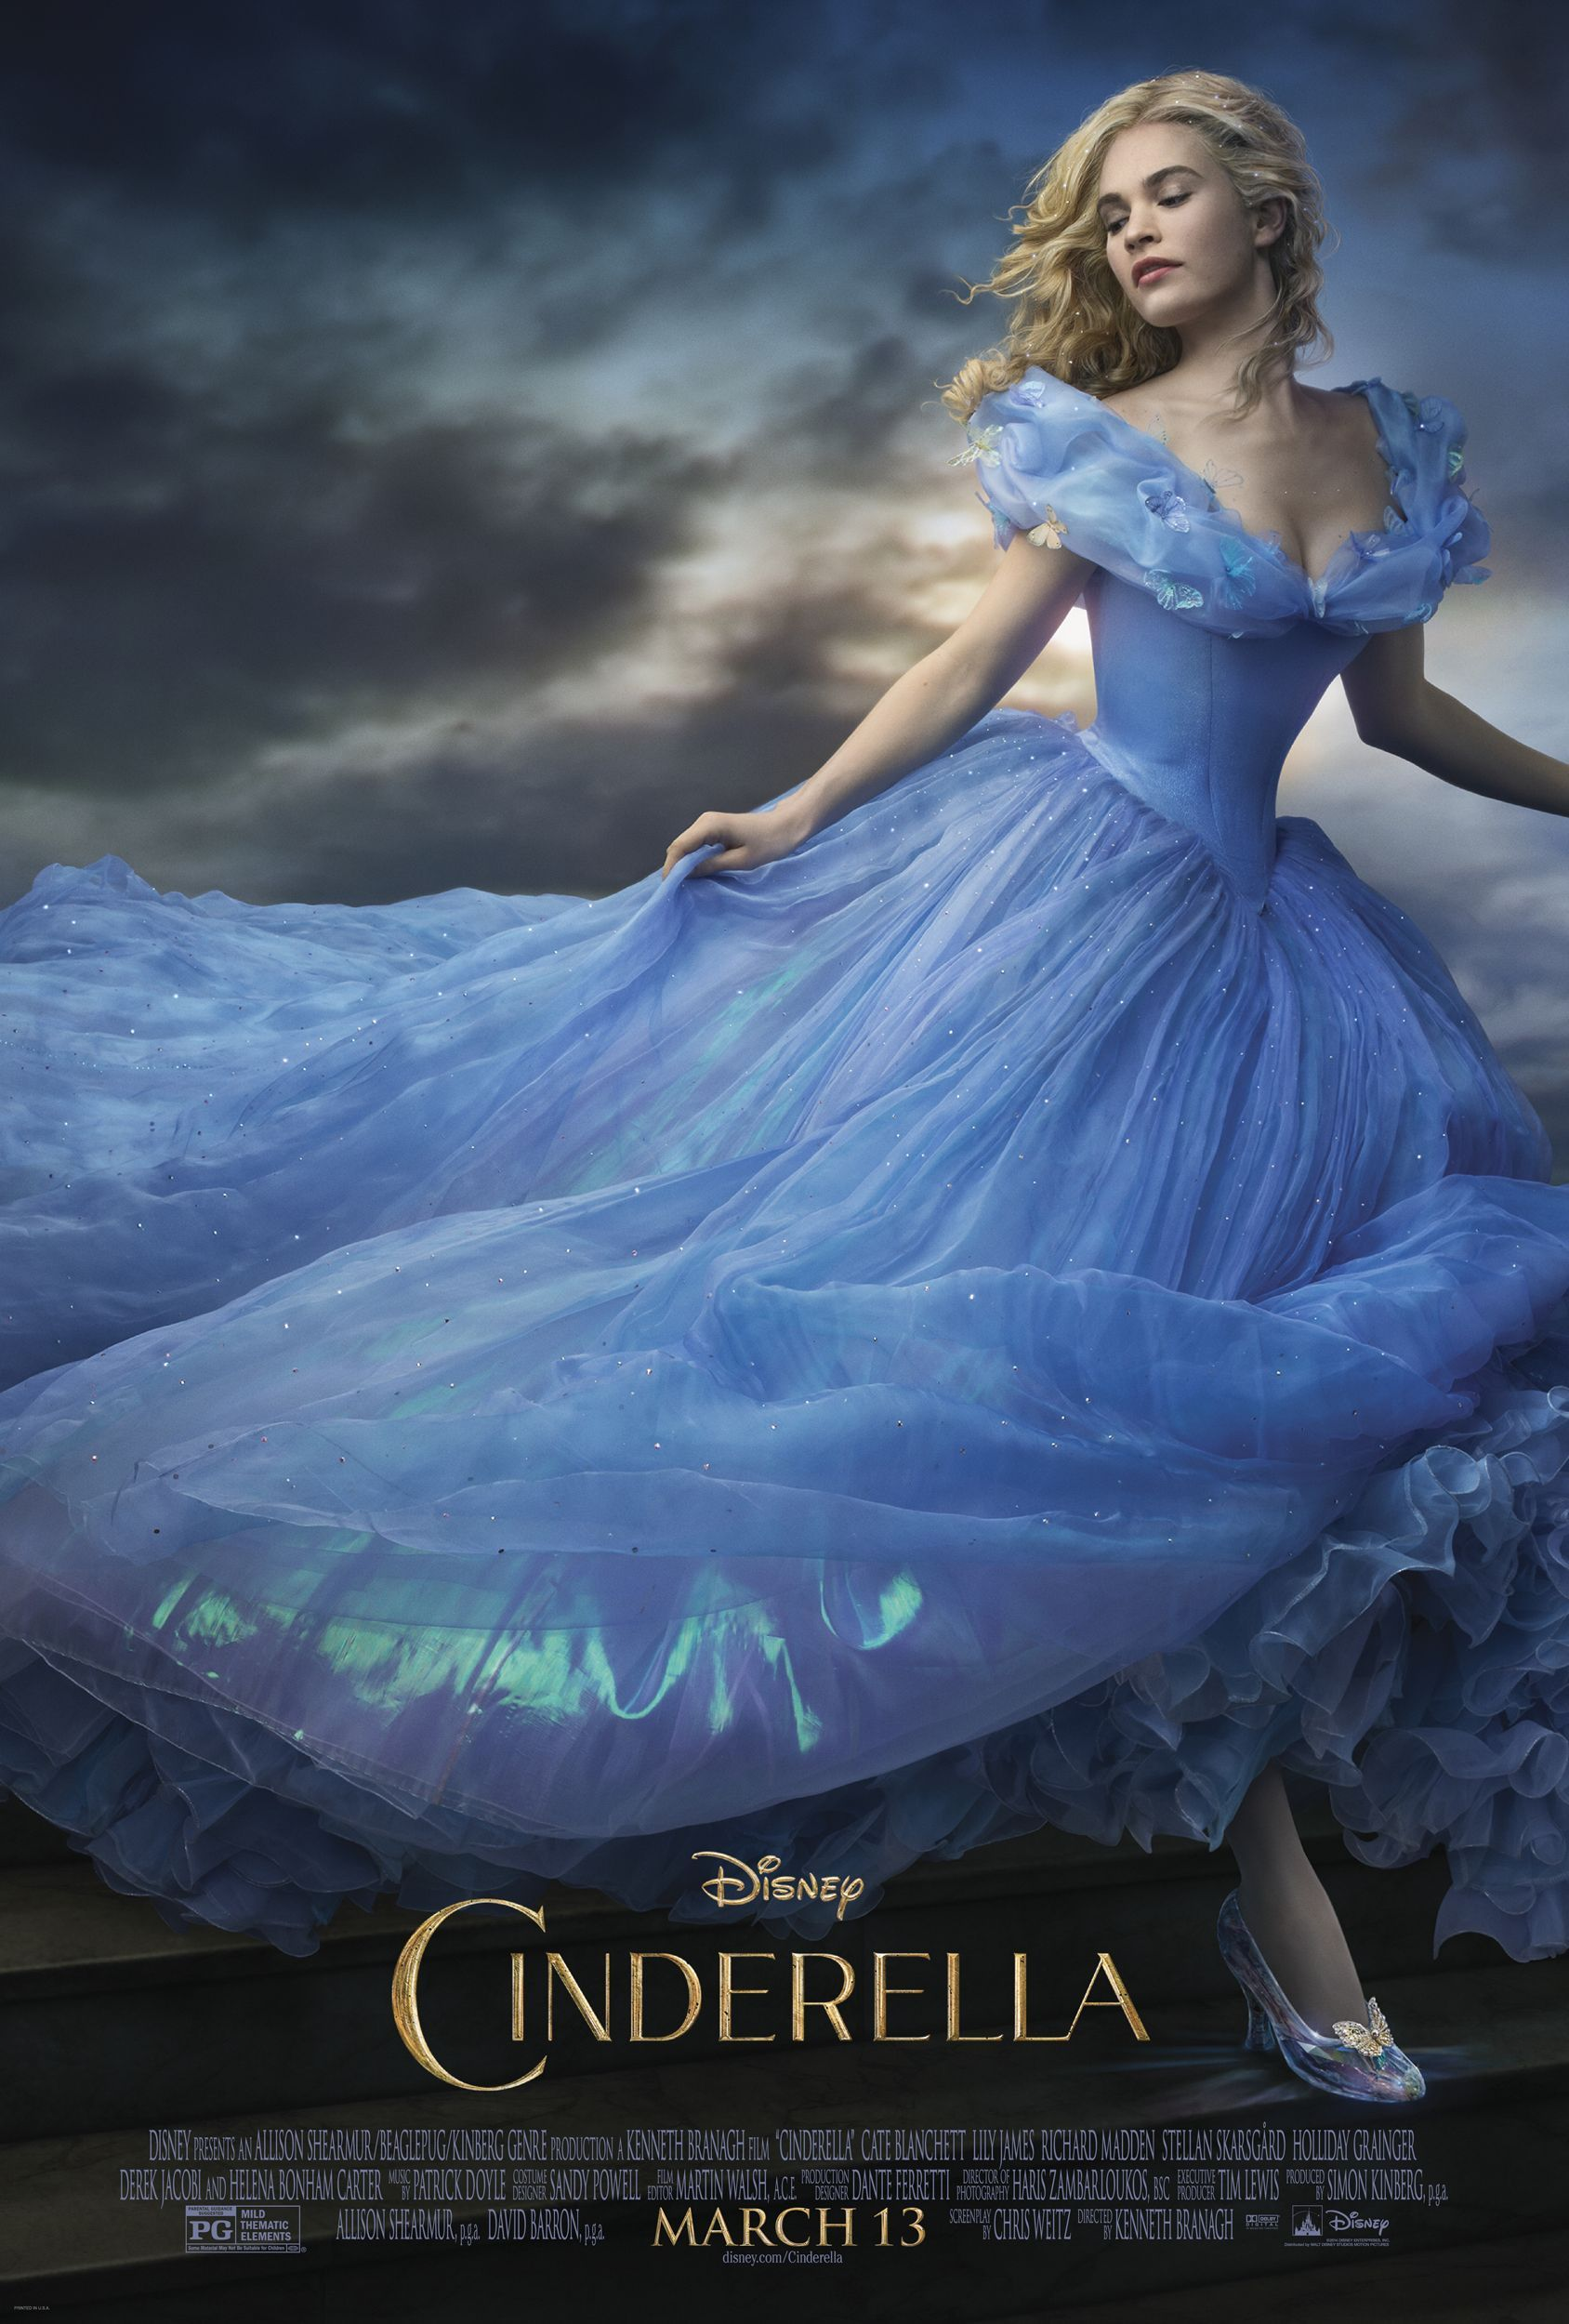 Disney\u2019s New \u201cCinderella\u201d First Look The images are flat out breathtaking, there are no scary scenes I will be nervous about taking my timid daughter to, and the trailer gives me GOOSEBUMPS! \u201cHooray!\u201d for Disney\u2019s n\u2026